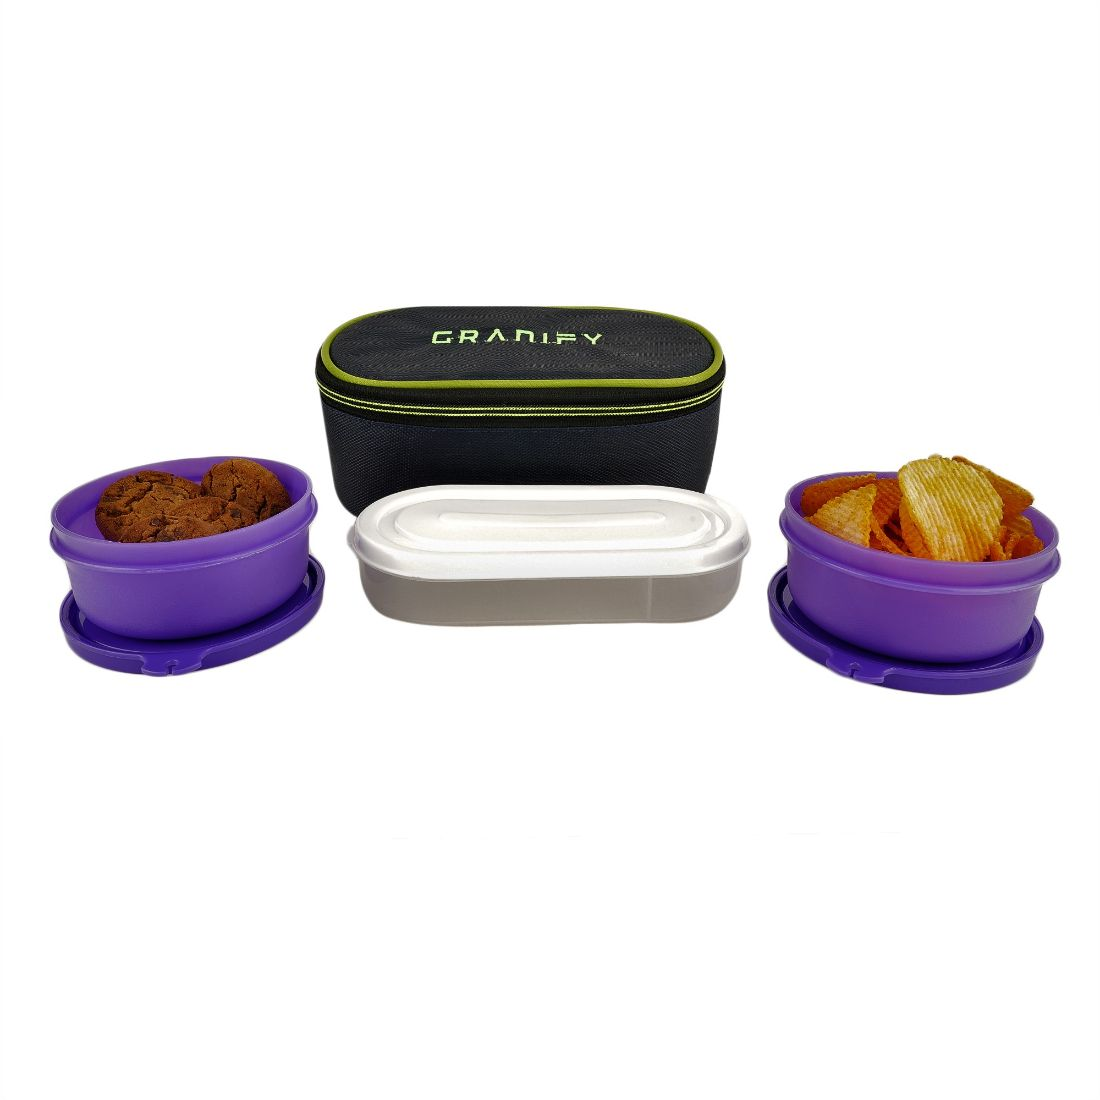 Granify Lunch Box   2 Containers With Bag Cover   1 Chapati Try   B